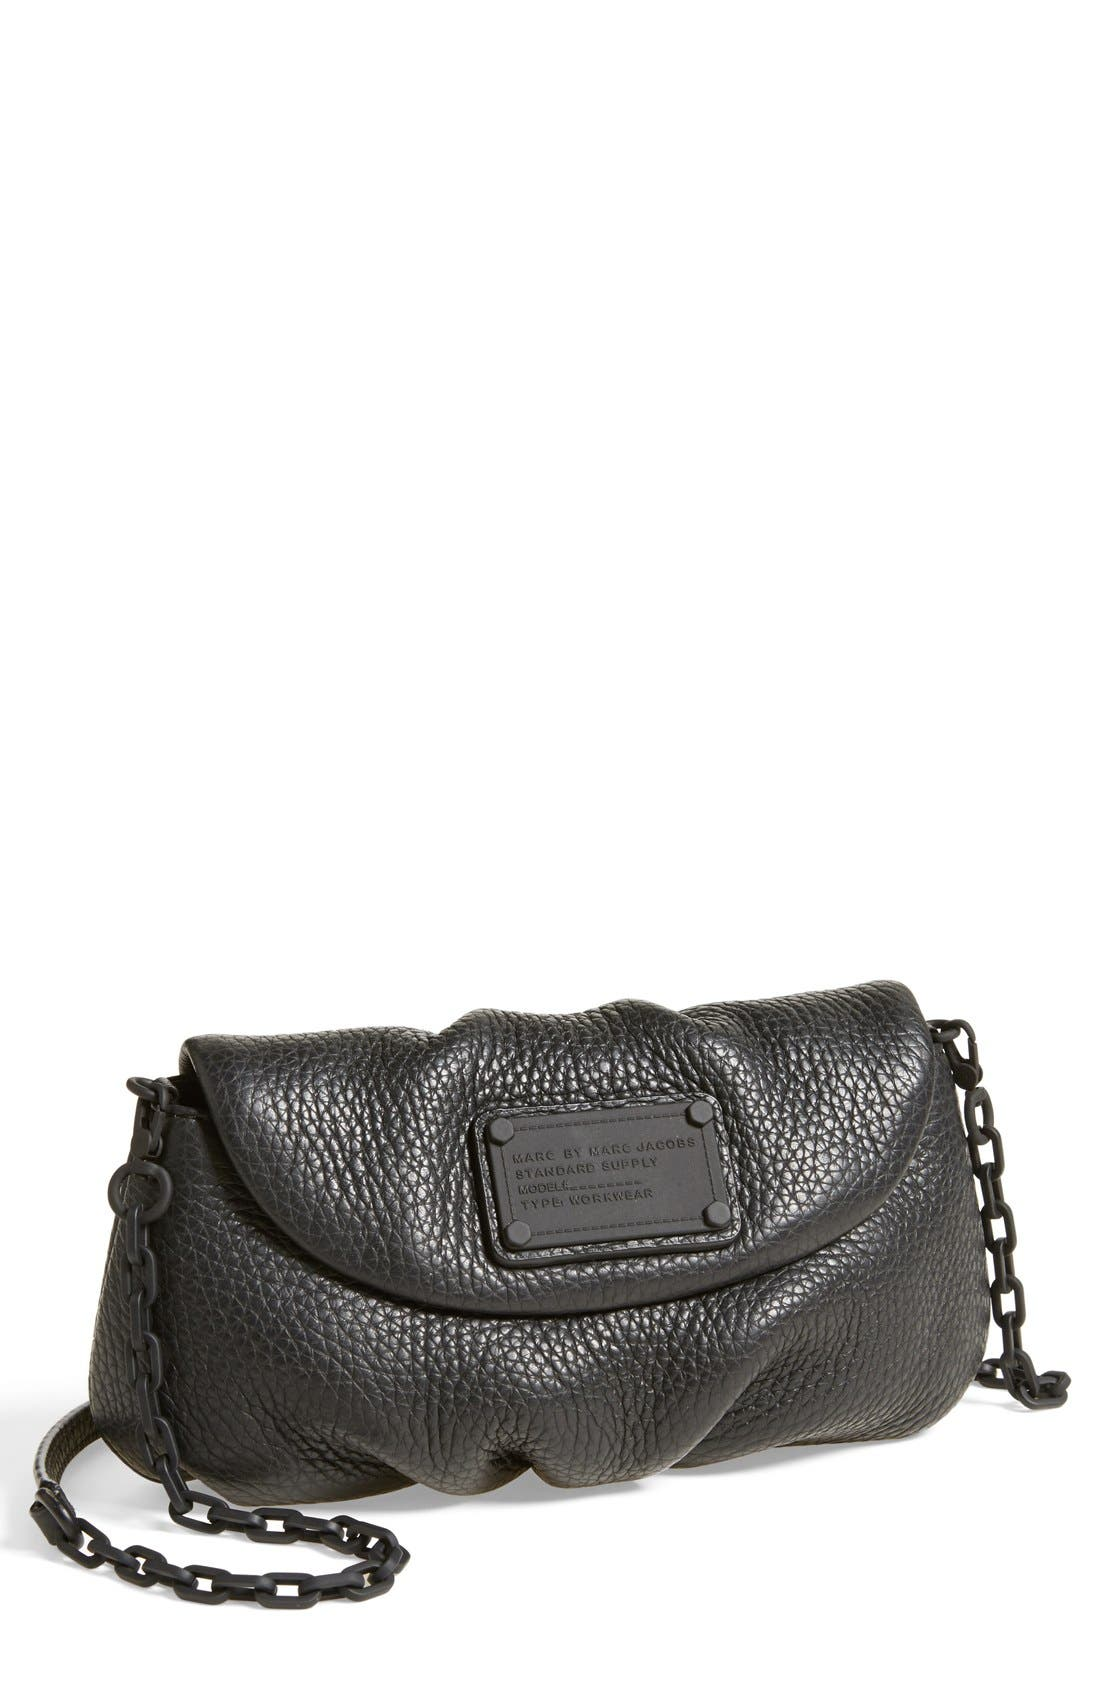 Main Image - MARC BY MARC JACOBS 'Electro Q - Karlie' Leather Crossbody Bag